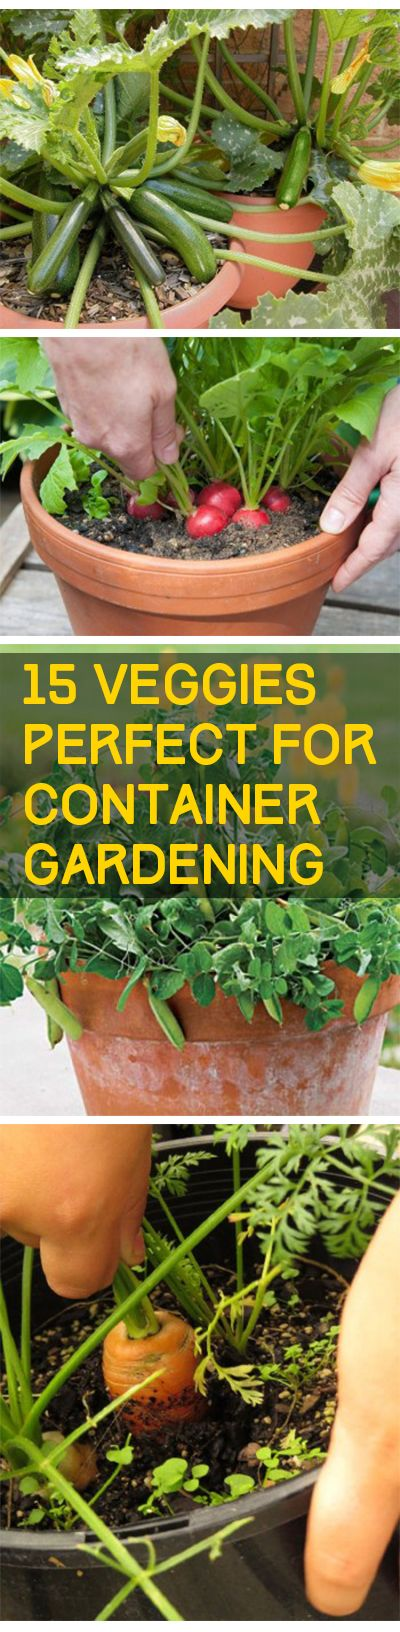 Best 25 backyard vegetable gardens ideas on pinterest veggie gardens raised gardens and - Growing vegetables indoors practical tips ...